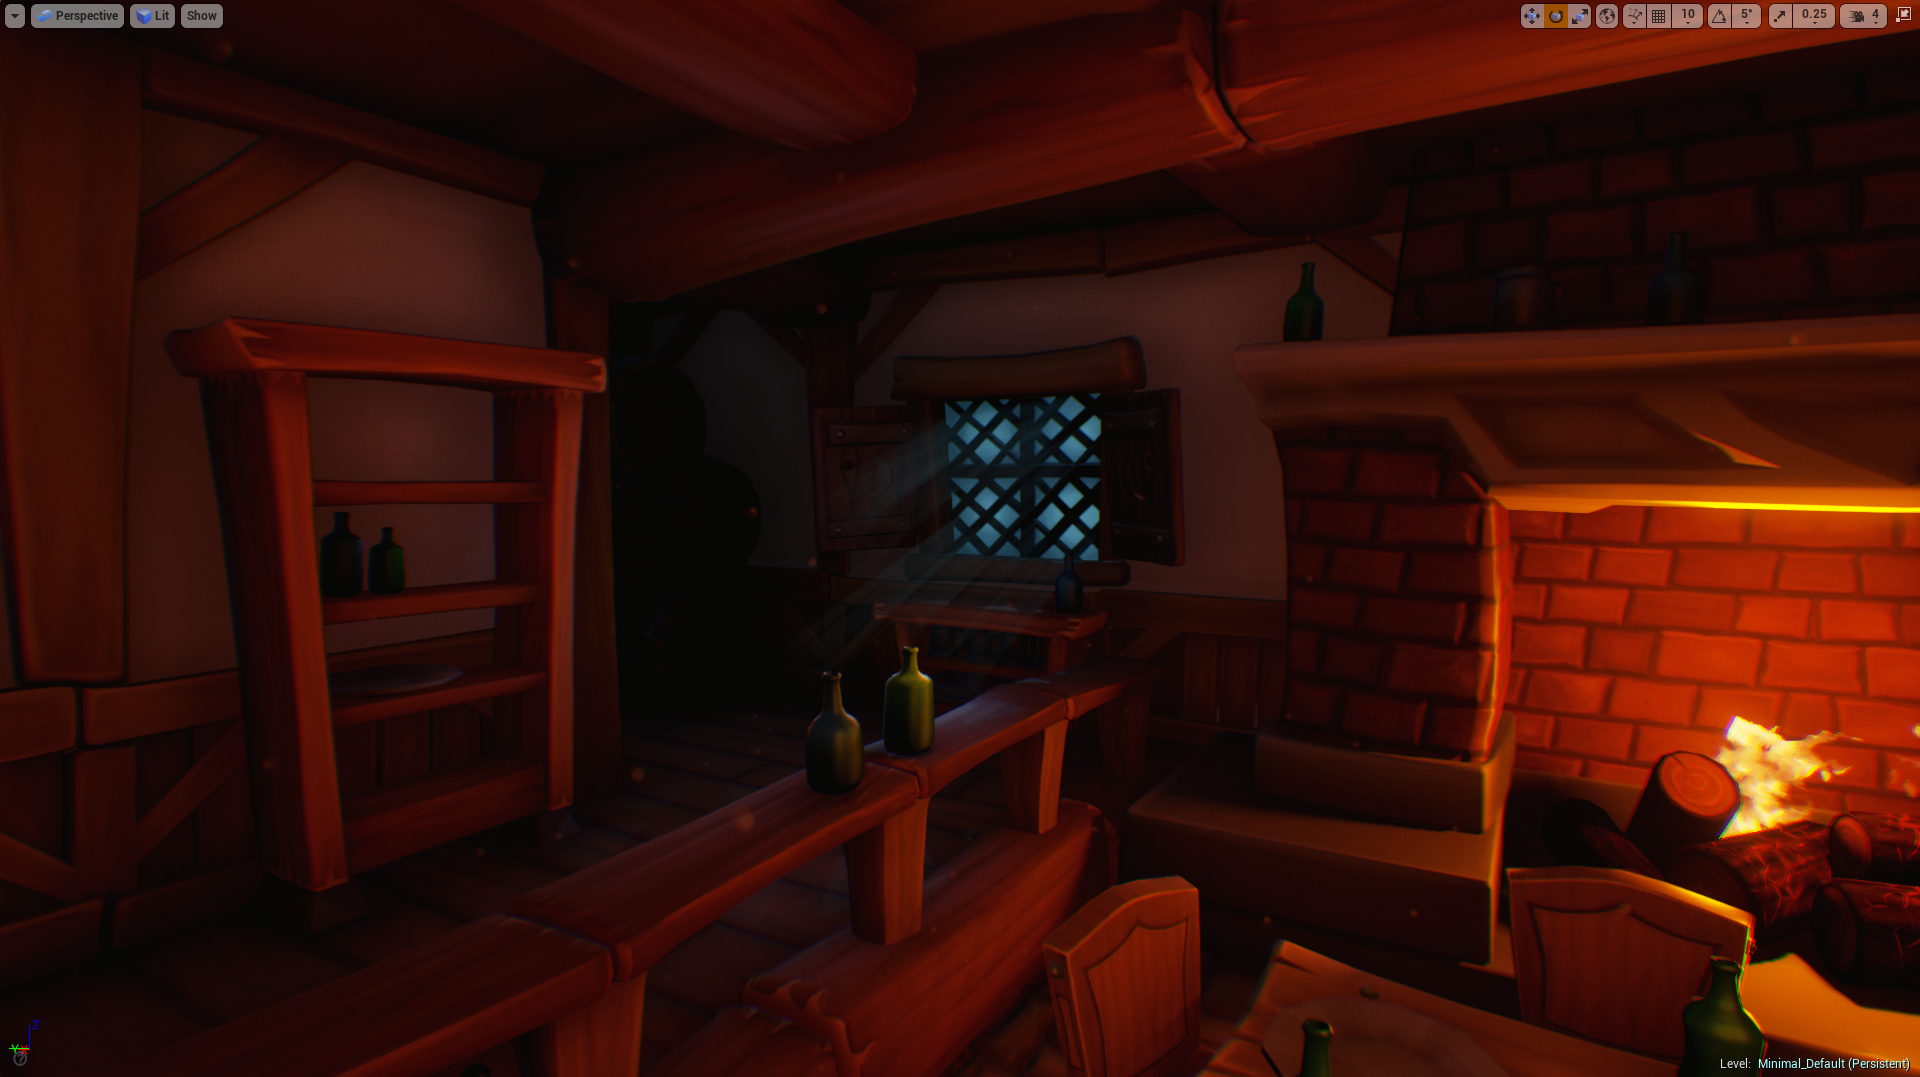 Handpainted Environment [UE4] — polycount